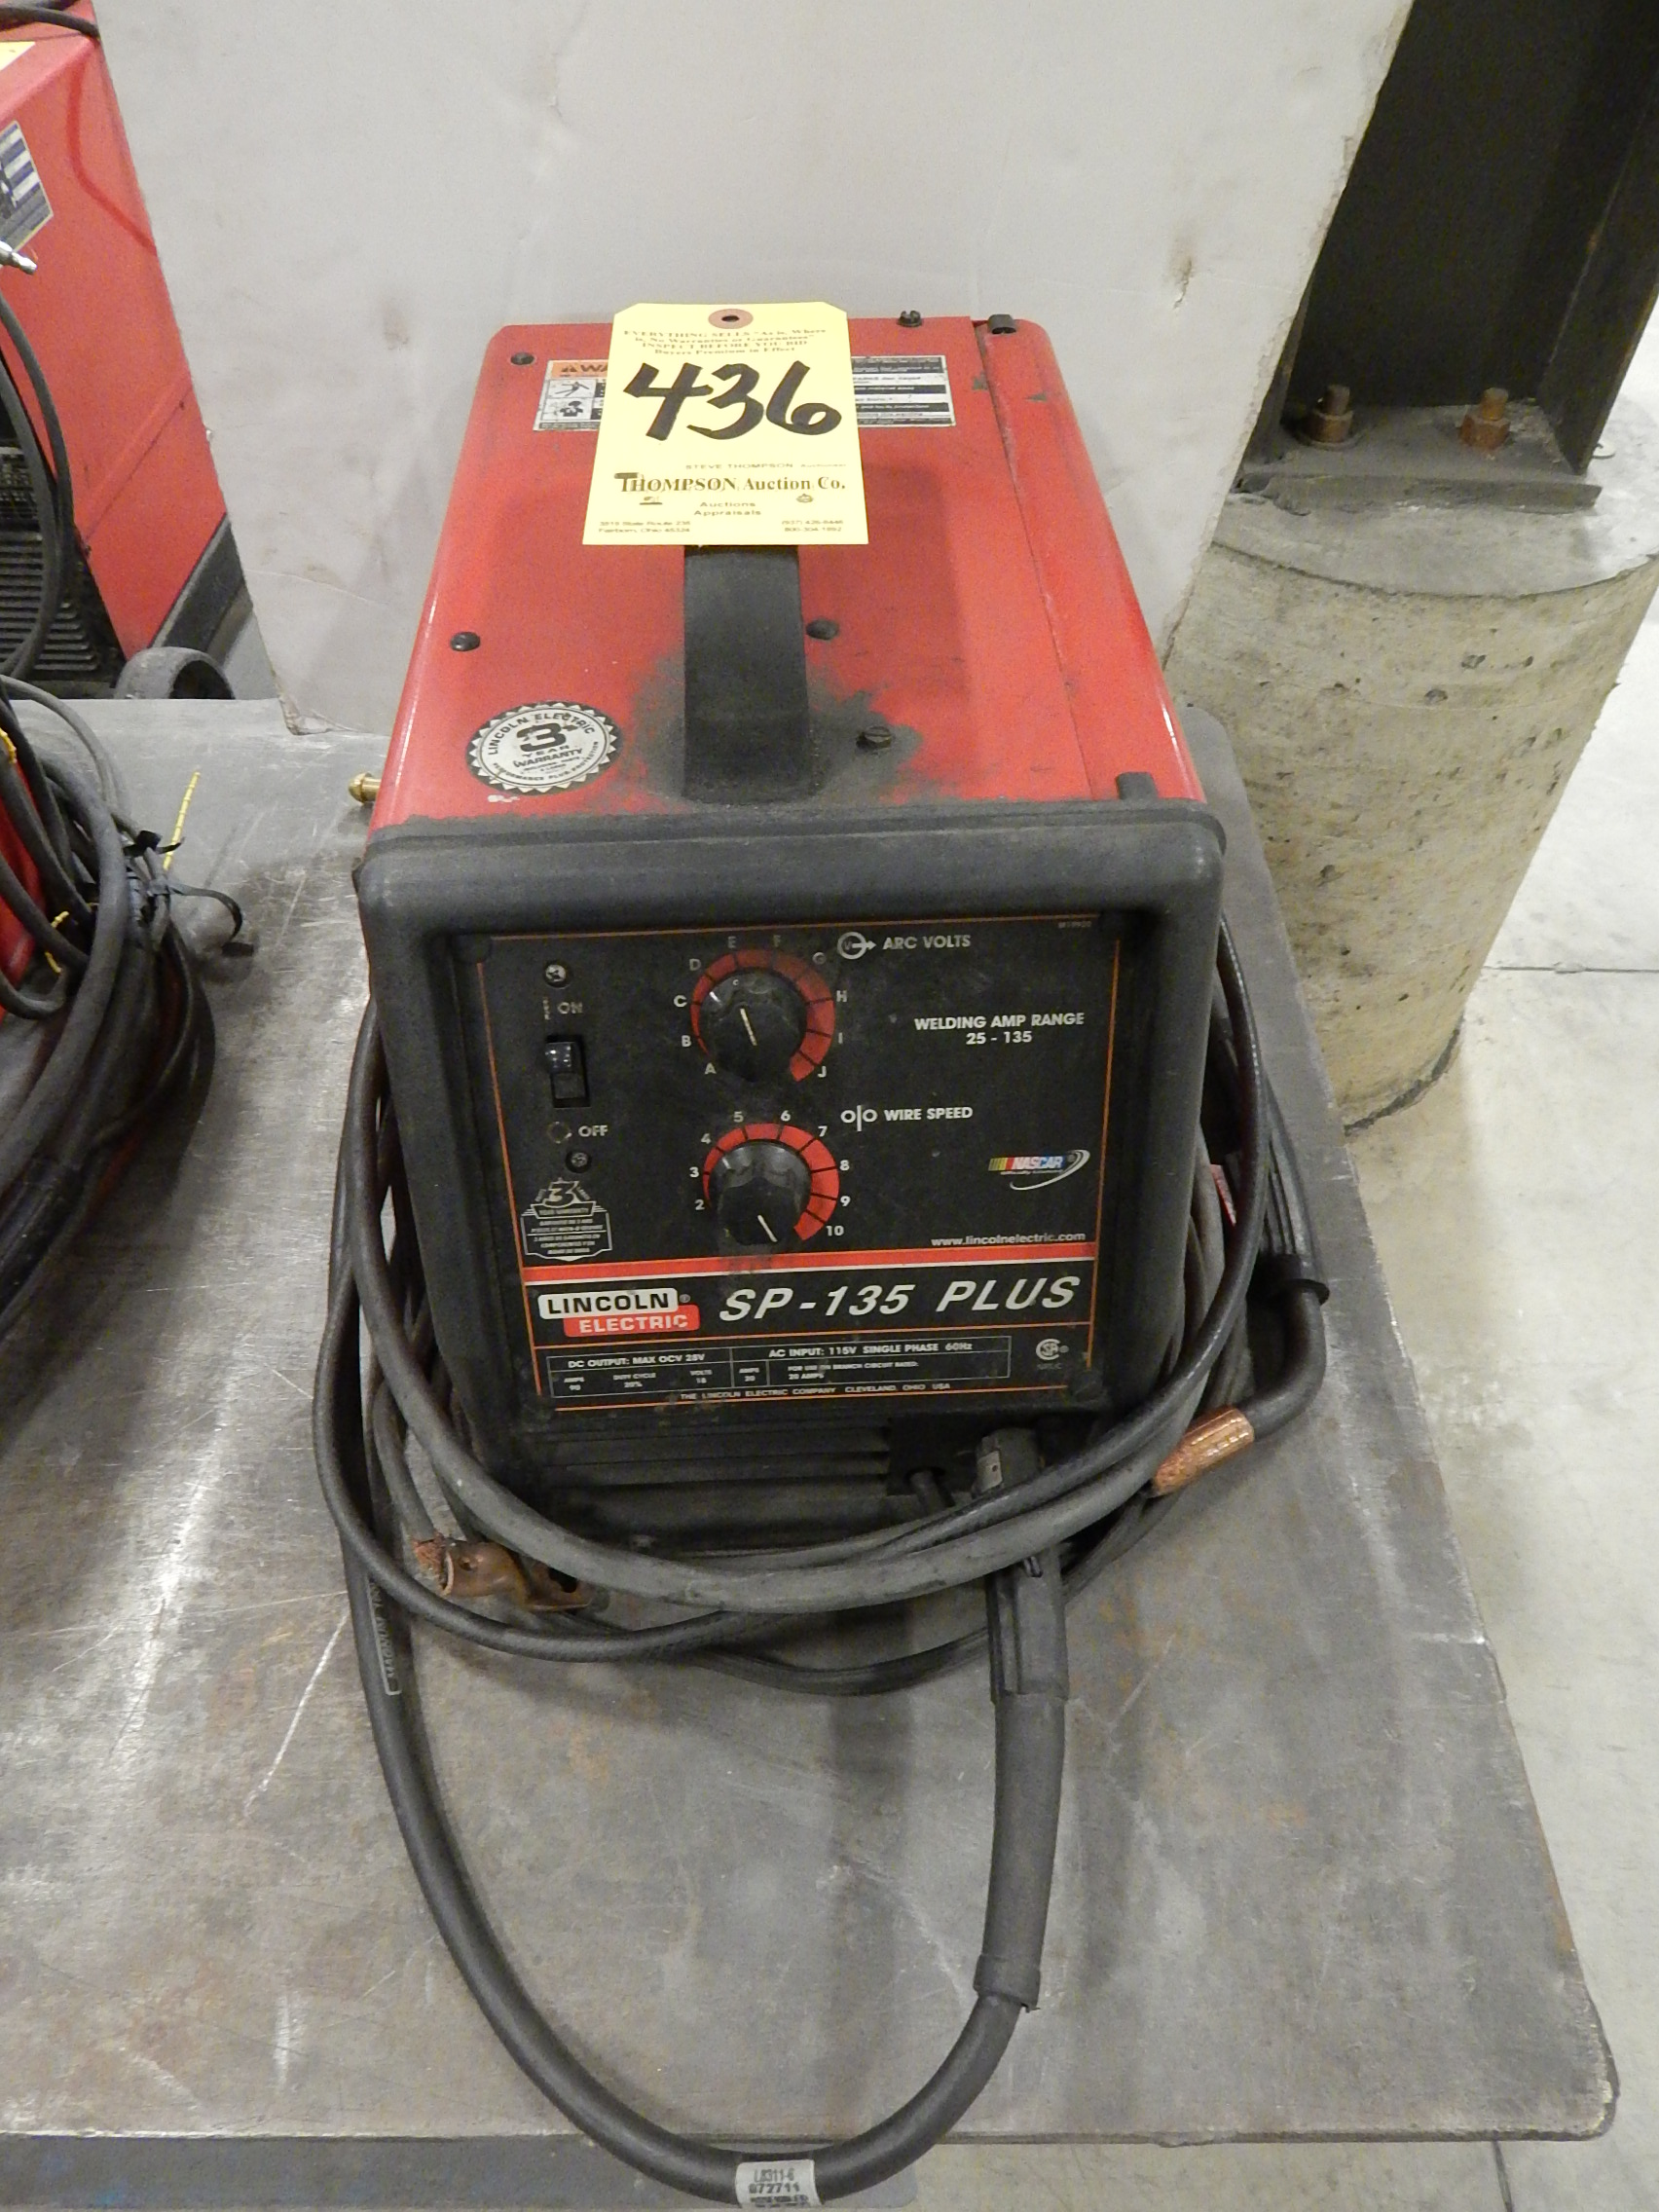 welder one shopping cheap quotations welding mig gloves lincoln size get line electric on deals brown leather at guides find usa